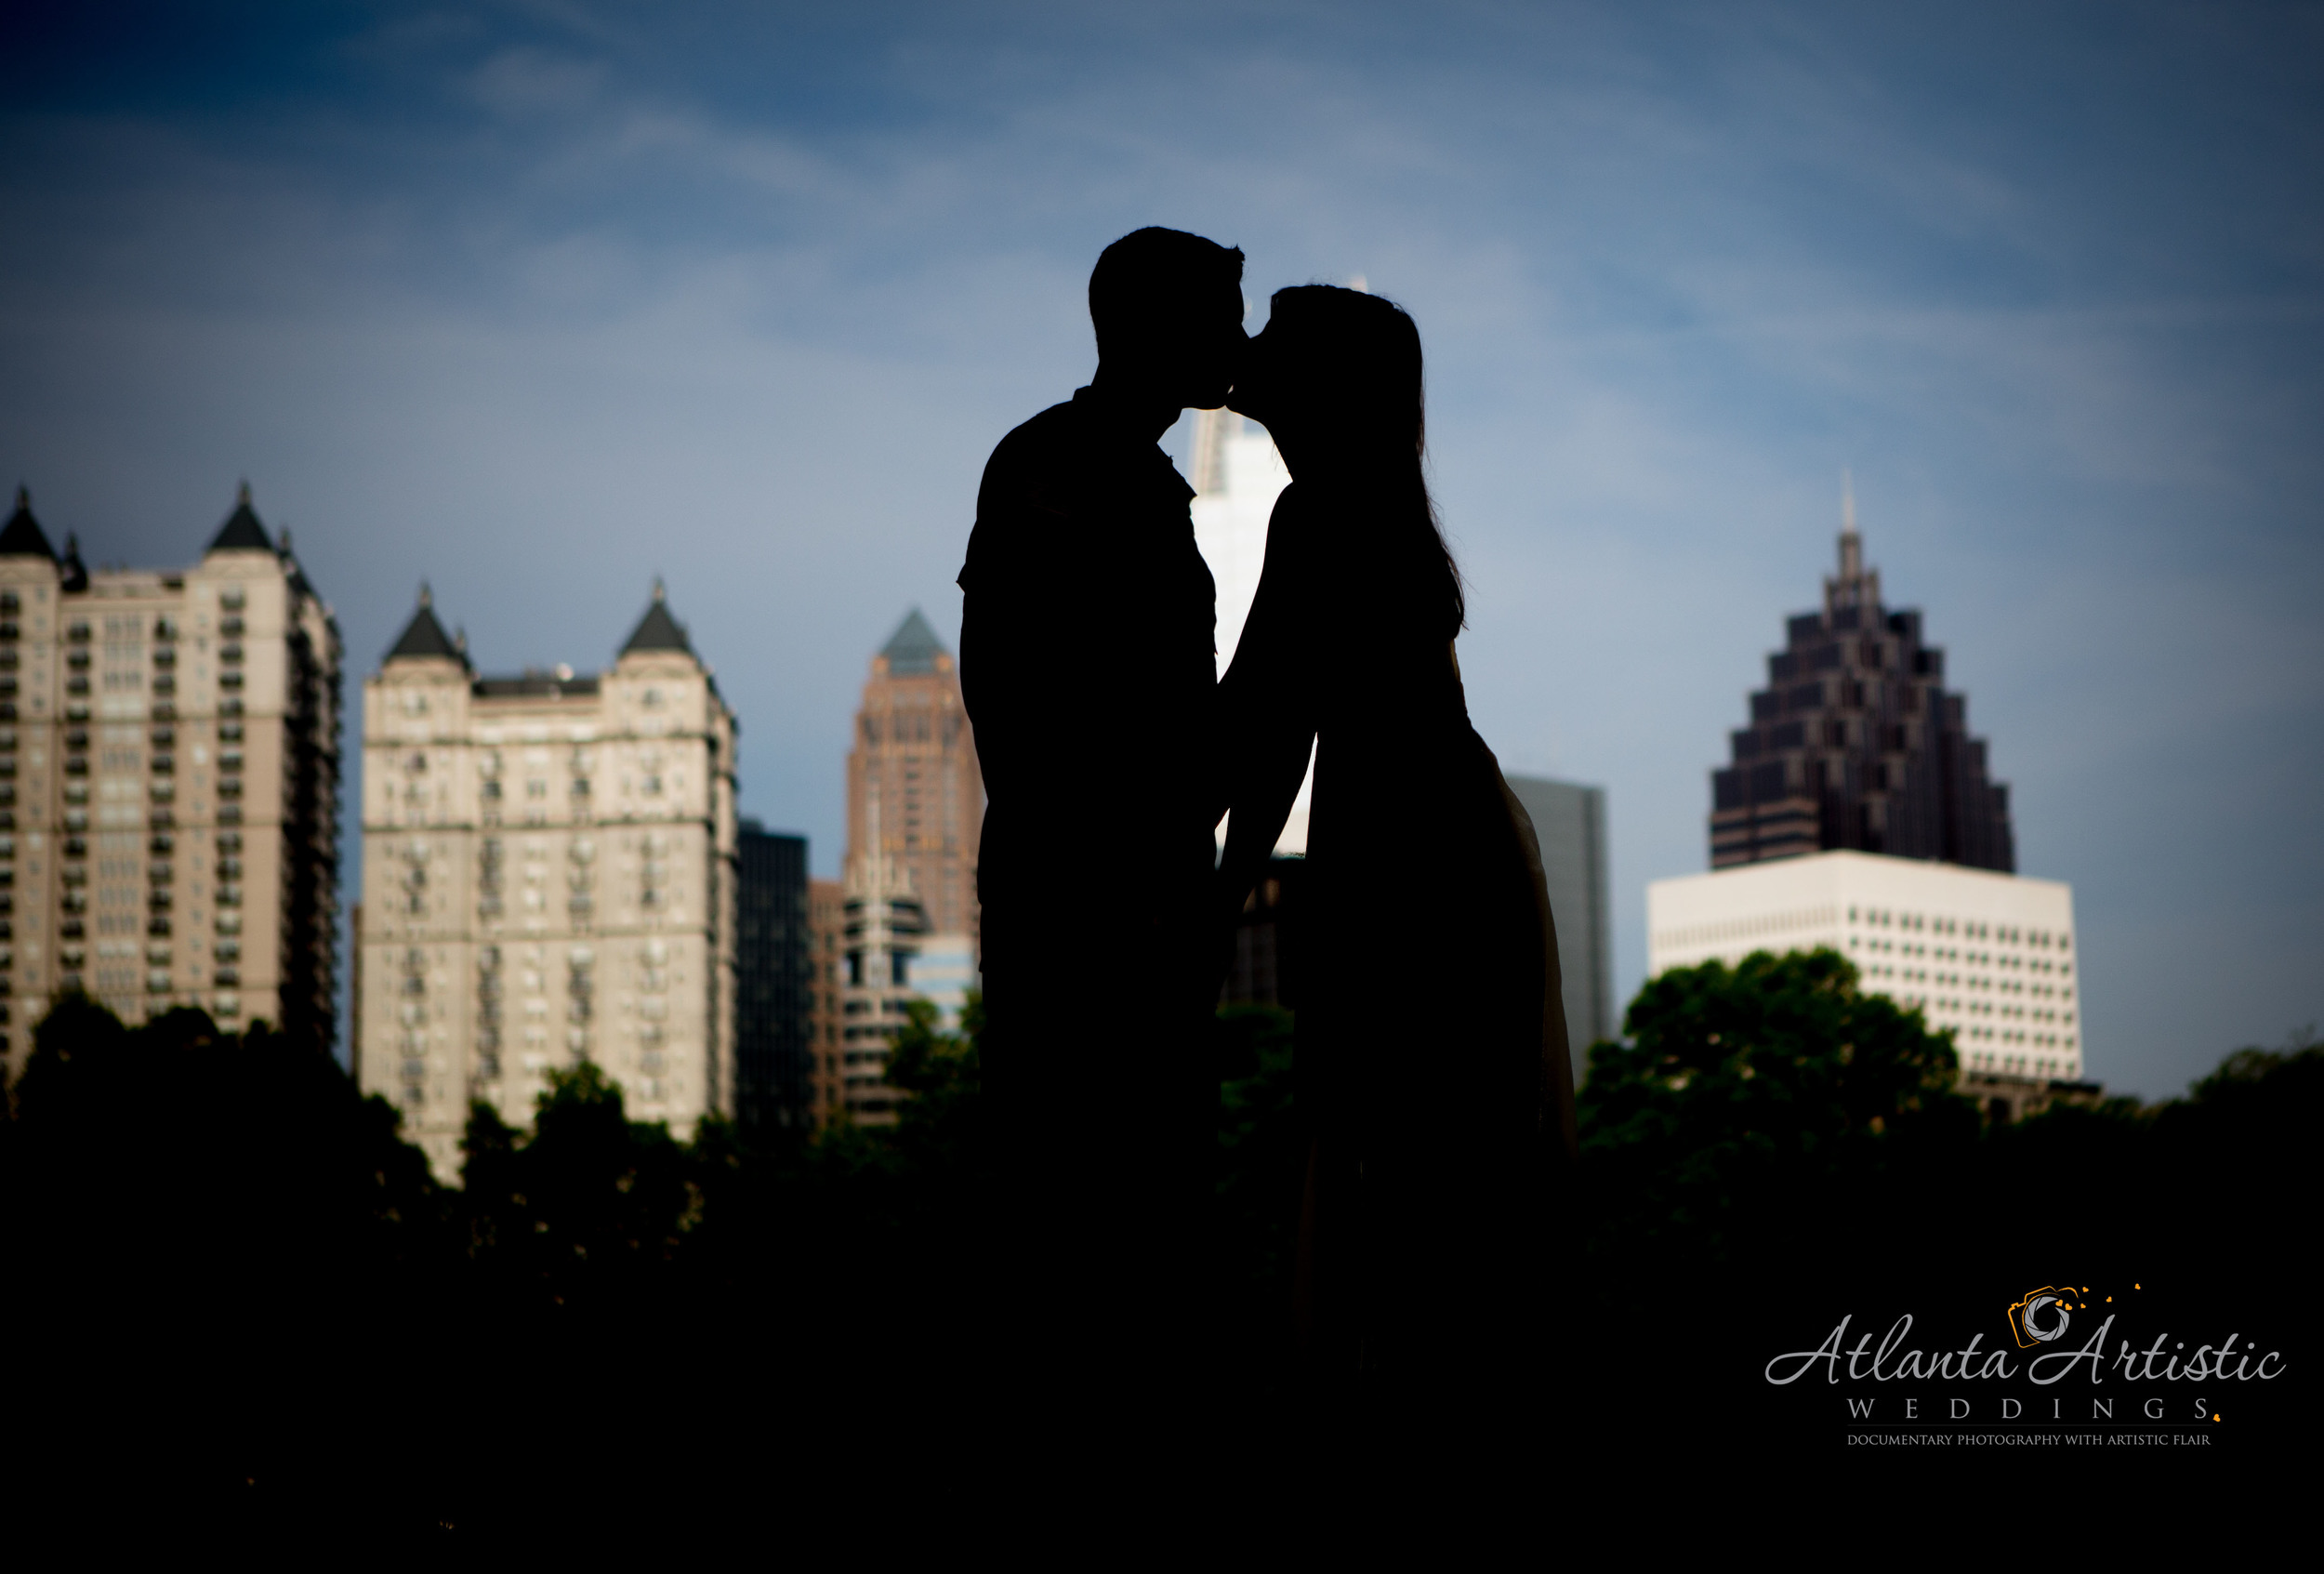 Photo locations in Atlanta by wedding photographers at  www.atlantaartisticweddings.com